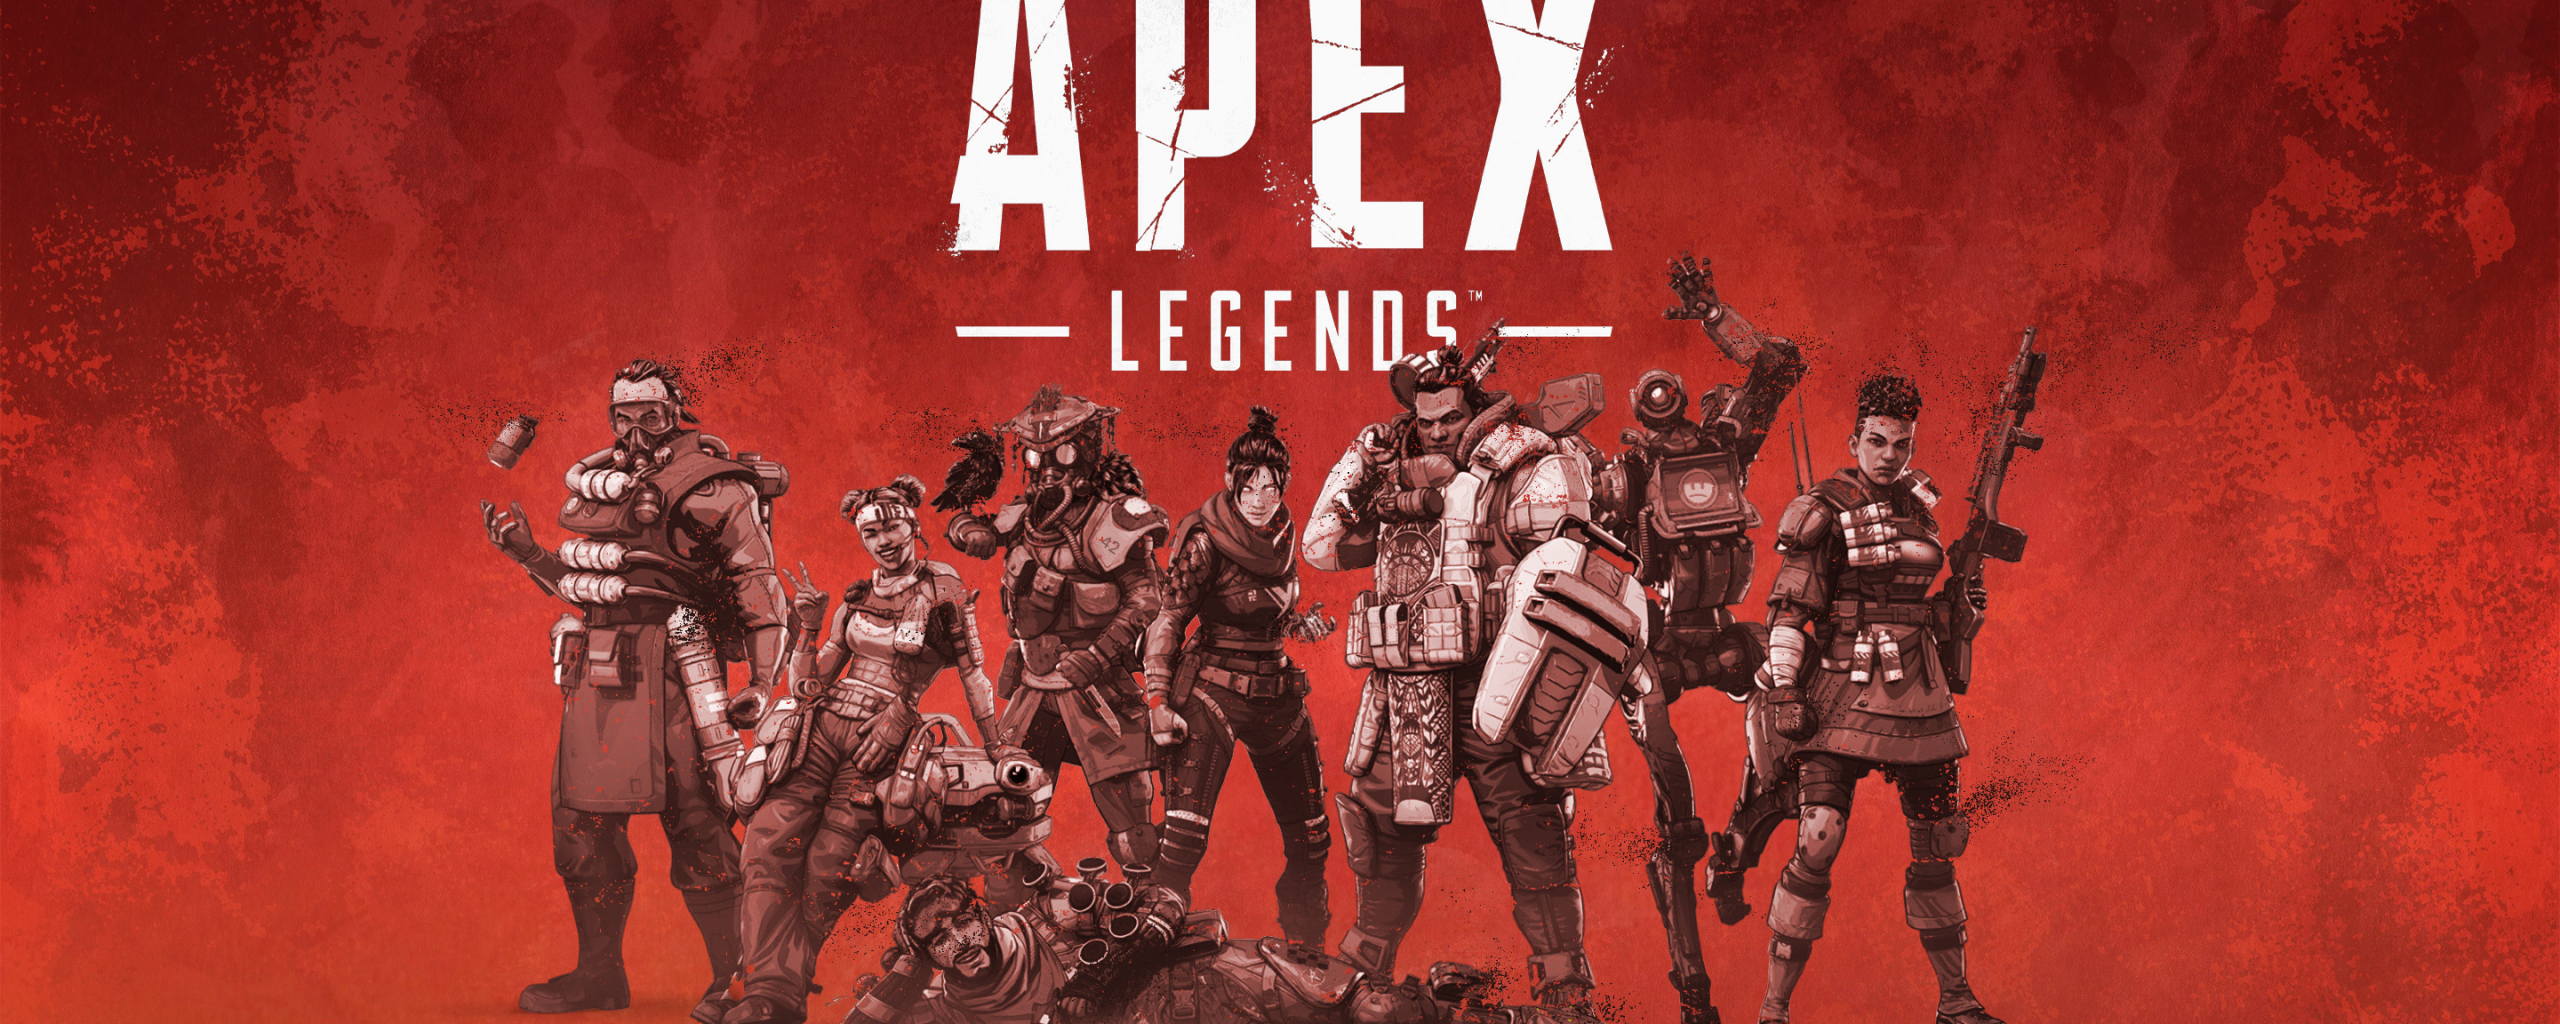 Download 2560x1024 Wallpaper Poster Video Game 19 Apex Legends Dual Wide Wide 21 9 Widescreen 2560x1024 Hd Image Background